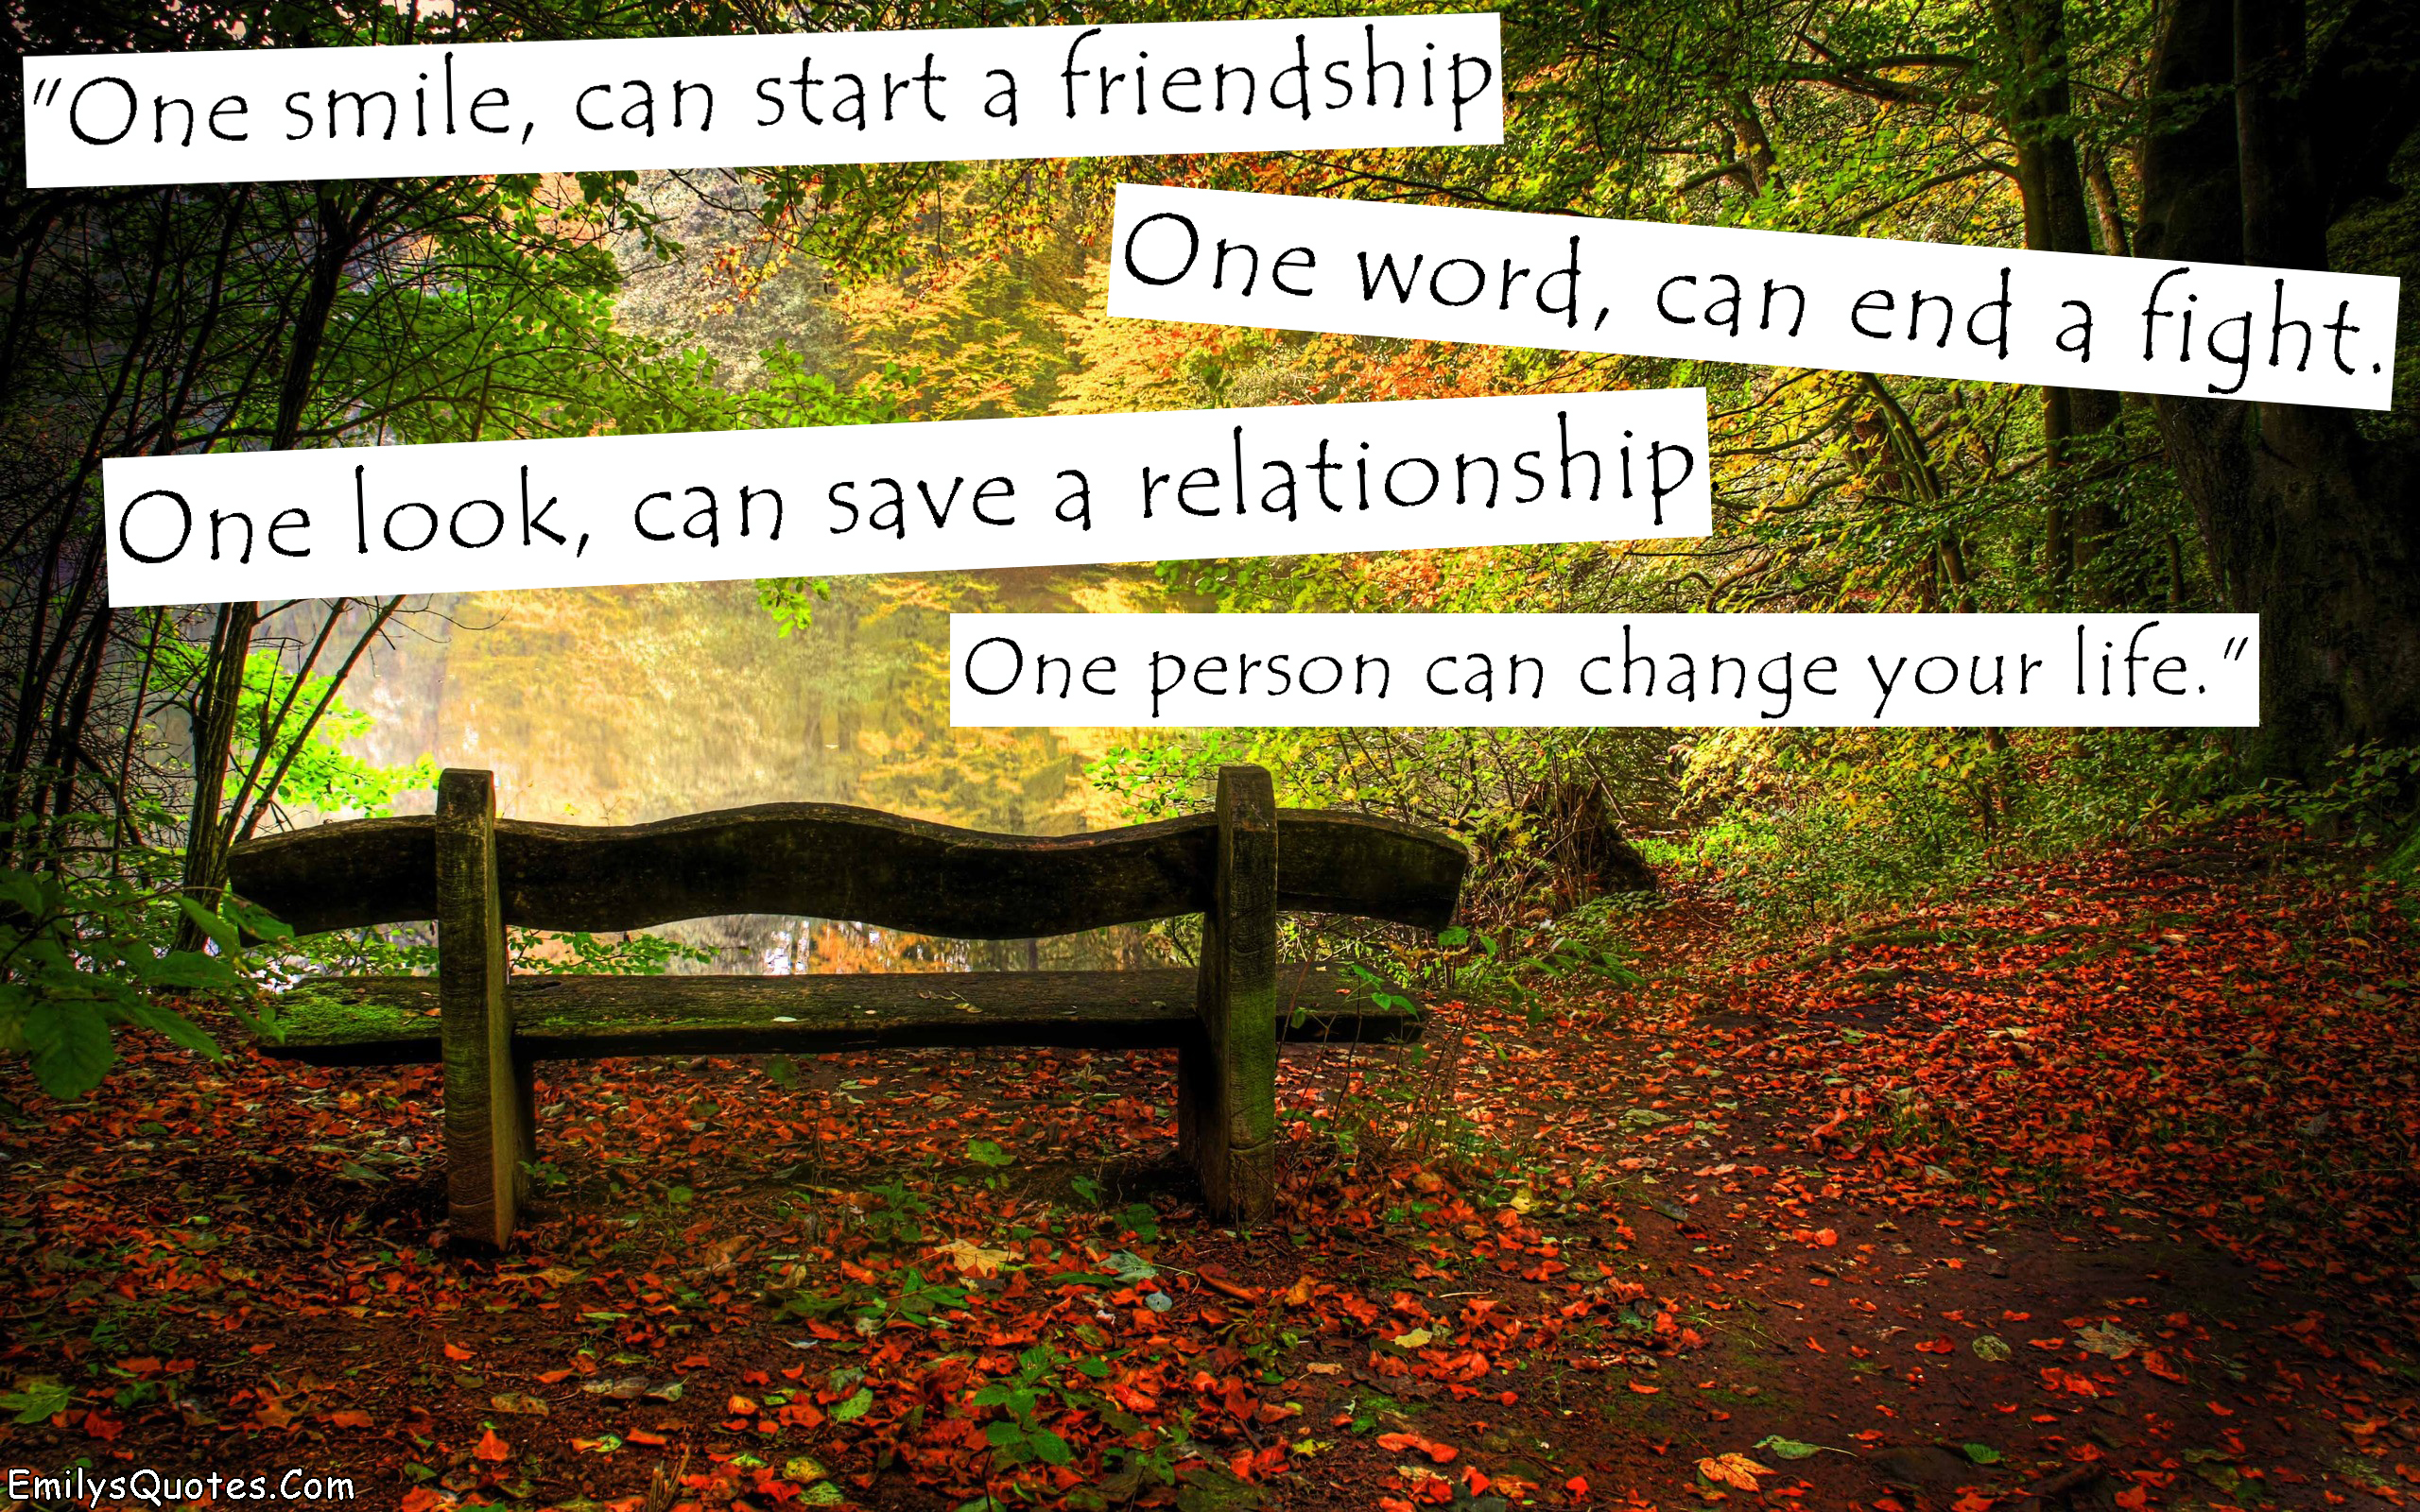 Quotes About Life And Friendship Inspirational Stunning One Smile Can Start A Friendshipone Word Can End A Fightone